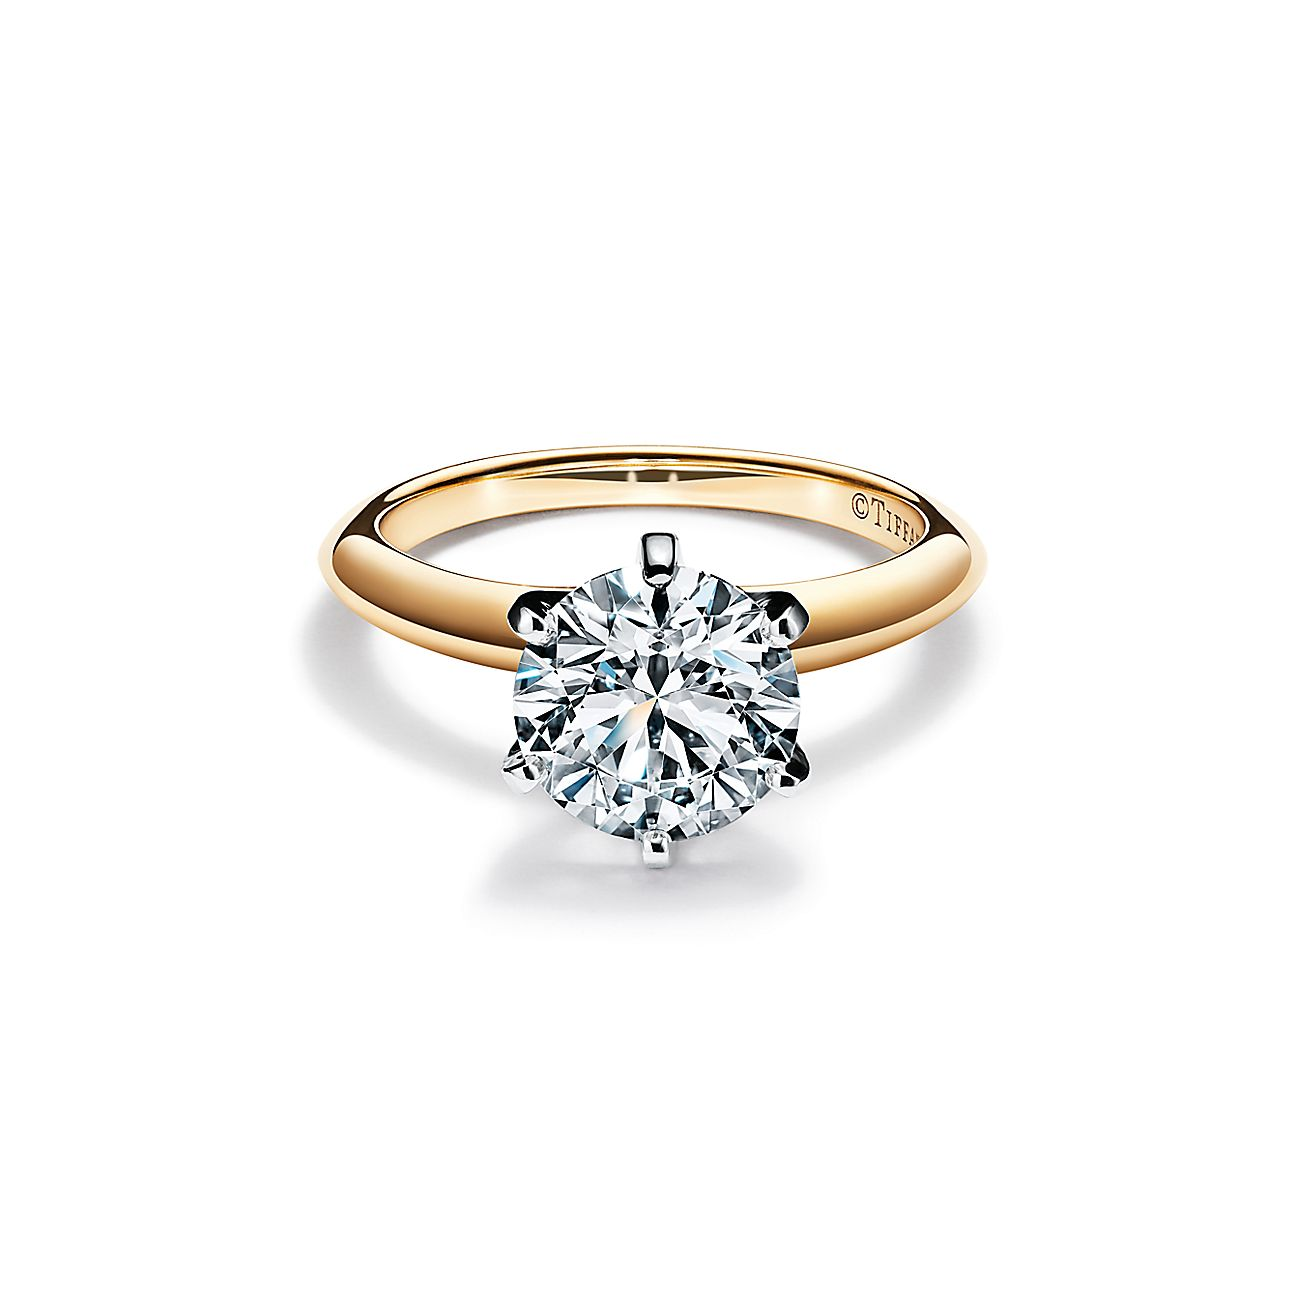 The Tiffany Setting In 18k Yellow Gold World S Most Iconic Engagement Ring Tiffany Co